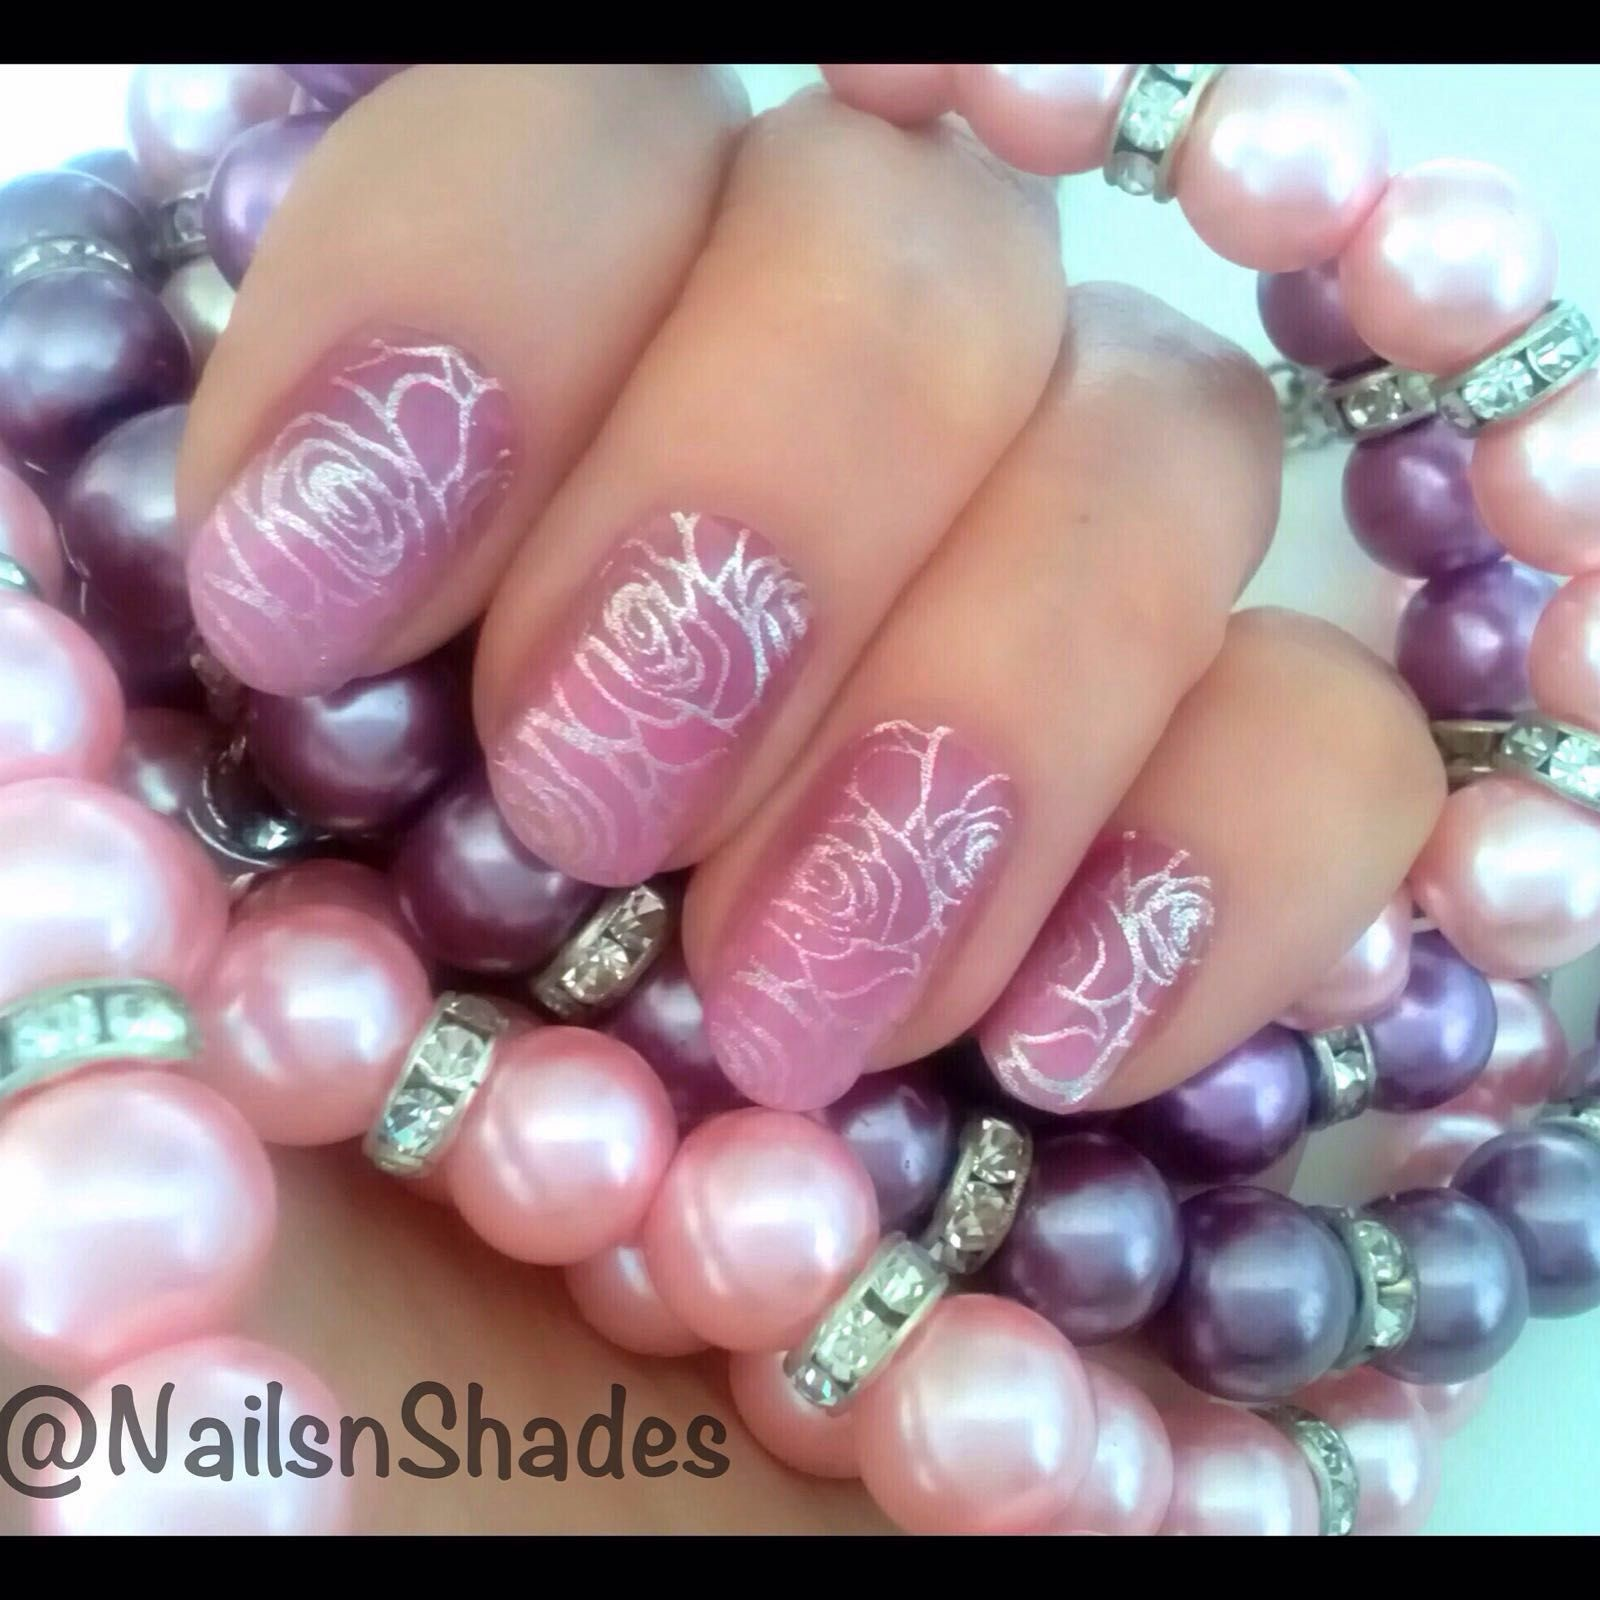 Gorgeous Nails By Nailsnshades Using Our Gni Mattastic